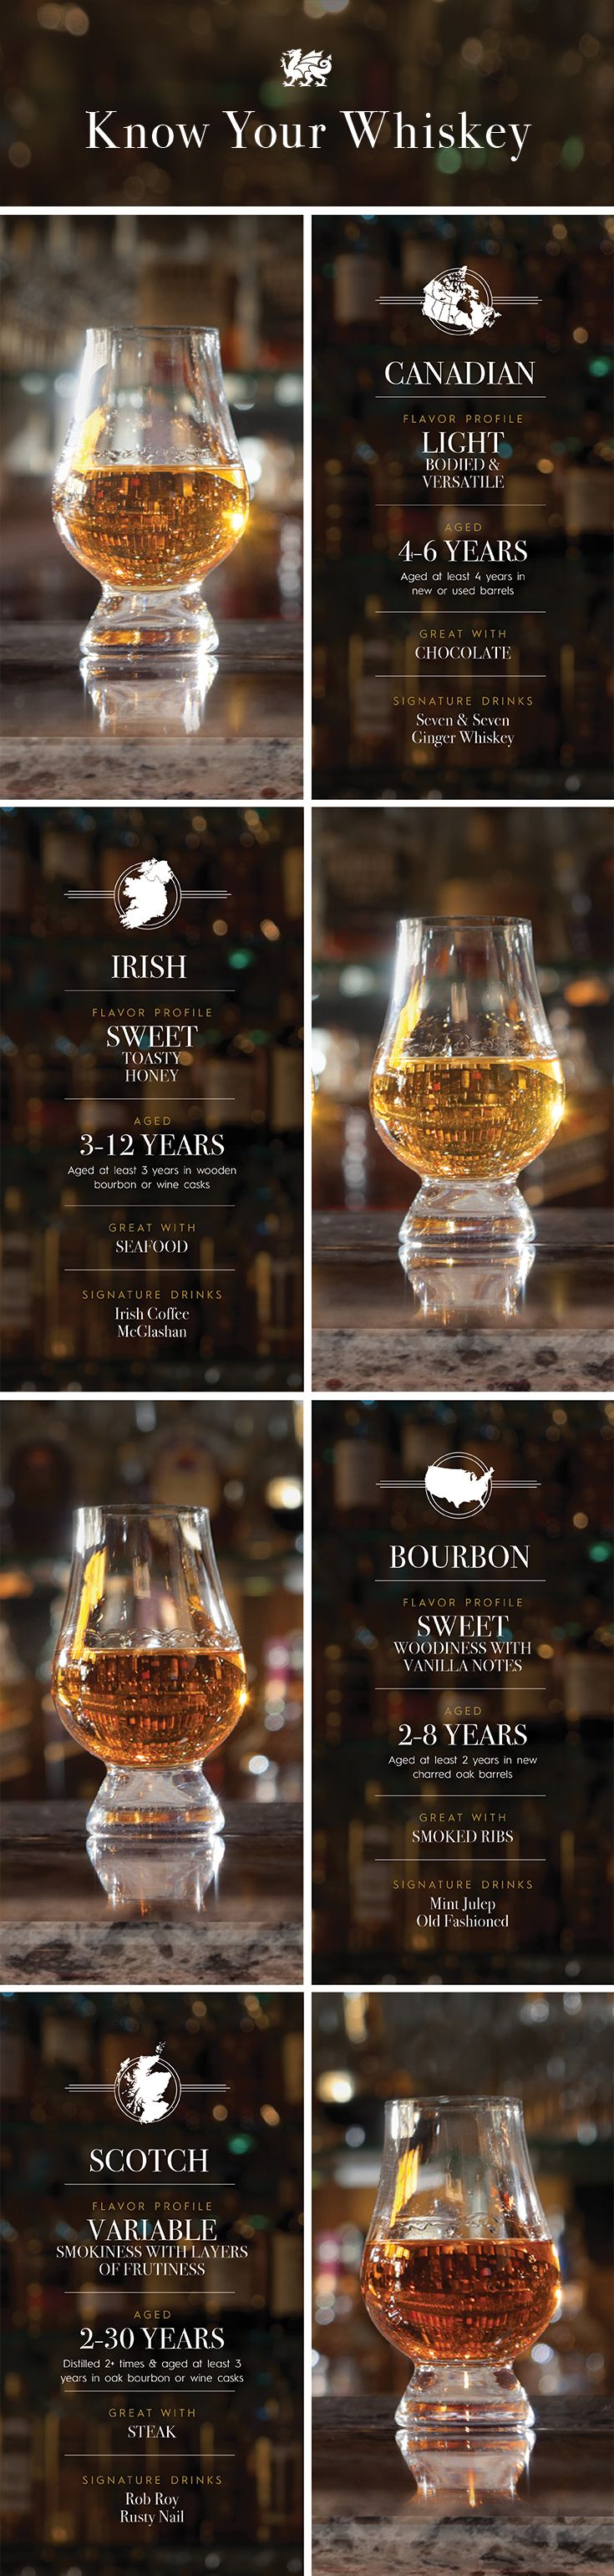 What makes bourbon different than scotch? Age and region influence each liquor's flavor profile, which can make one better suited for seafood and another better with steak. Learn more about bourbon, scotch and whiskey by clicking through to our whiskey guide.  [Featured Design: Brentwood] #MyCambria